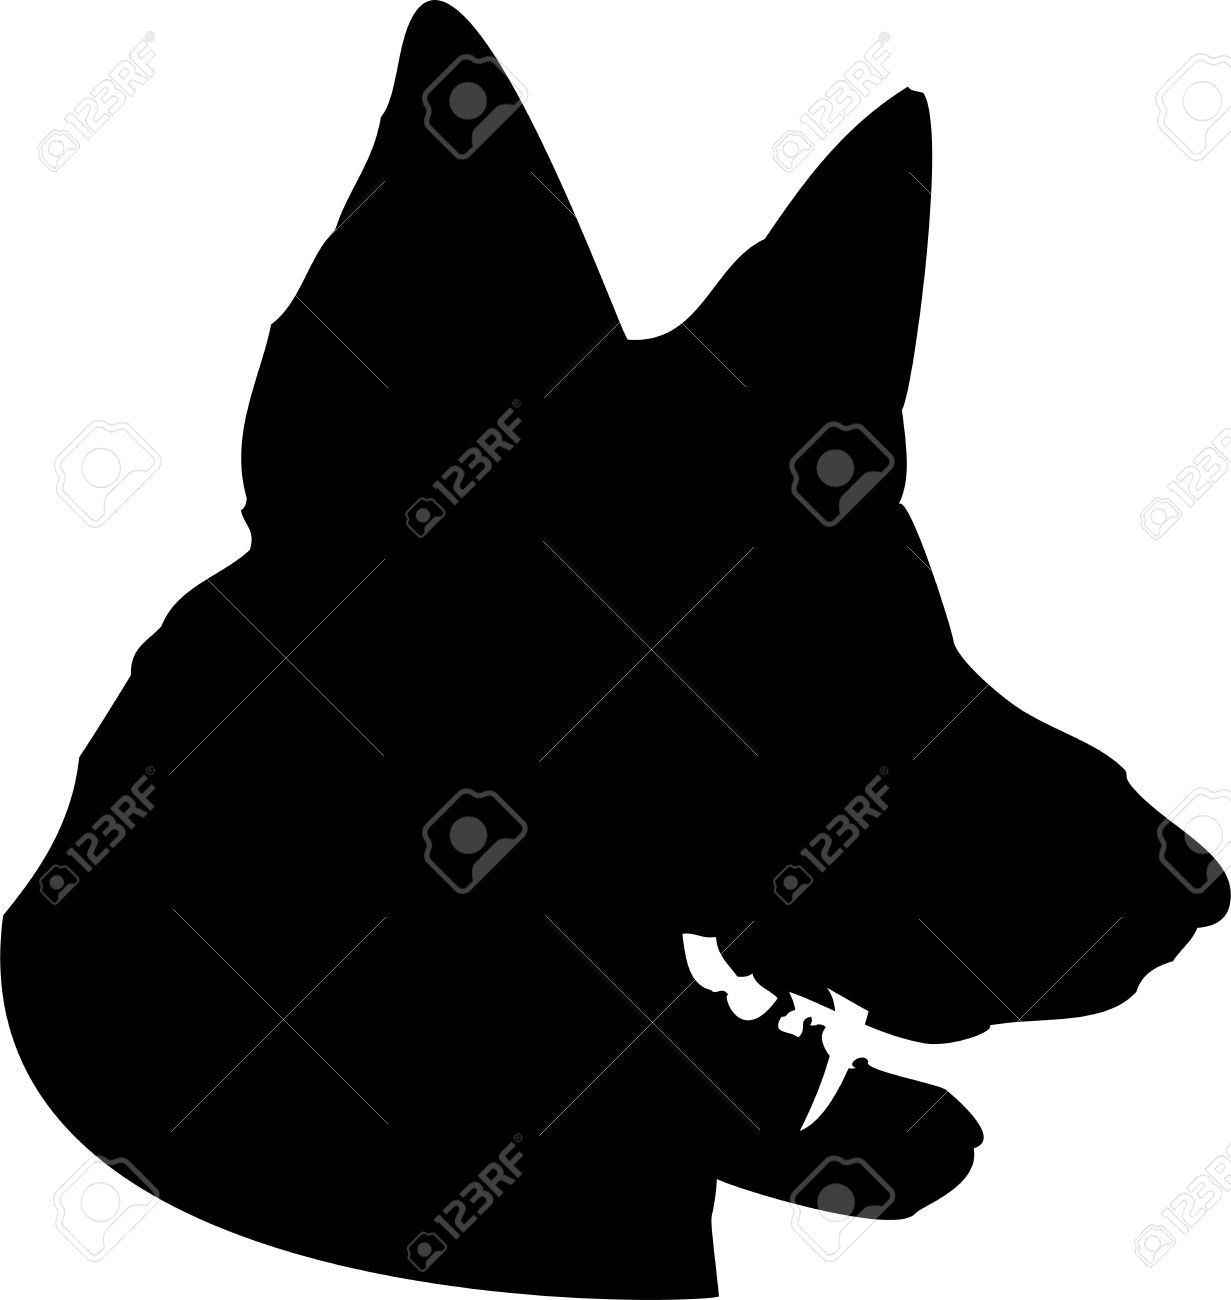 german shepherd stock photo picture and royalty free image image rh 123rf com german shepherd logo german shepherd logos on sweatshirts and tees